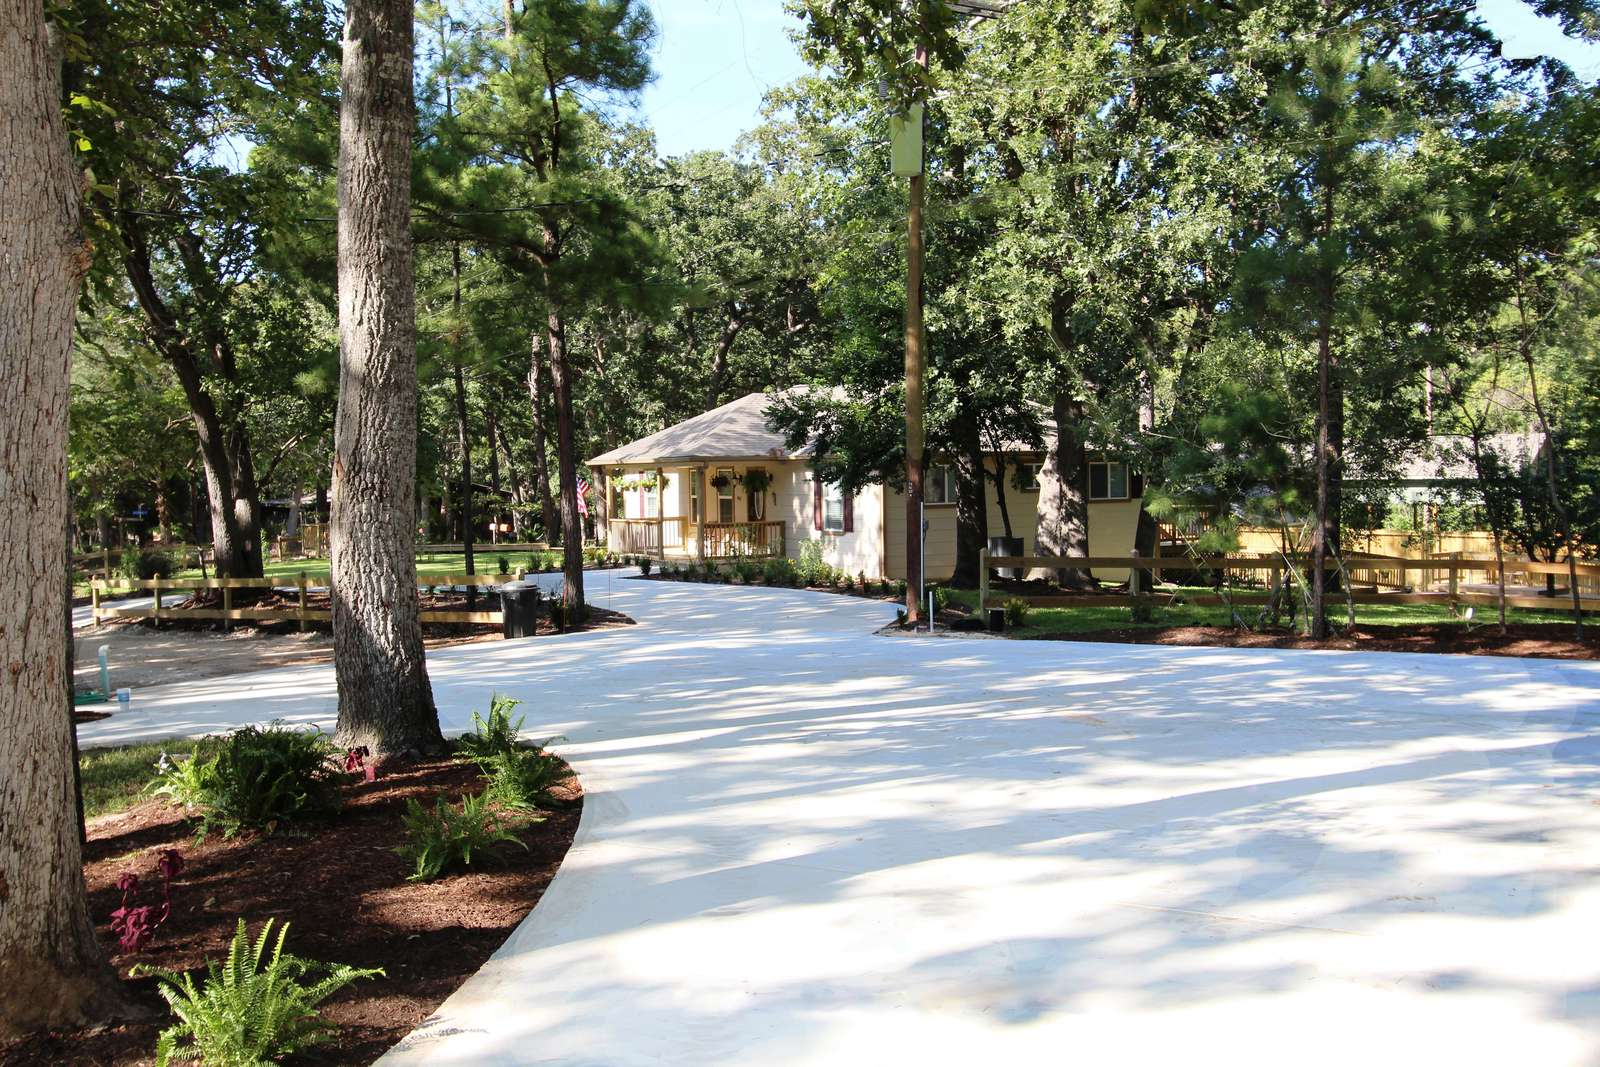 The circular driveway offers plenty of room for parking. We can arrange trailer parking if needed.